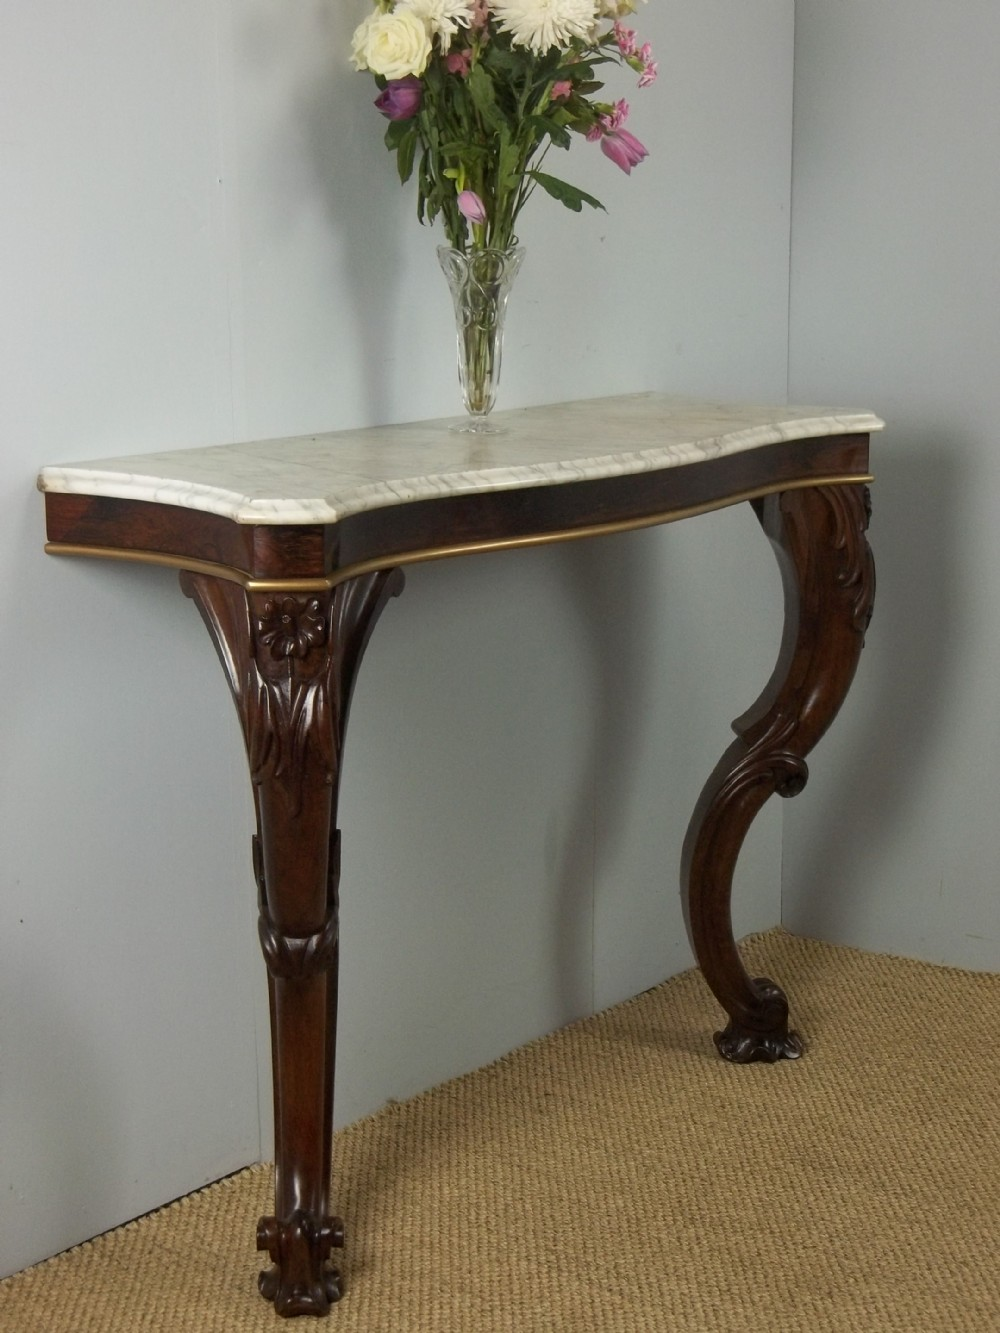 antique stunning quality regency rosewood console pier hall side table with serpentine shaped marble top c1830